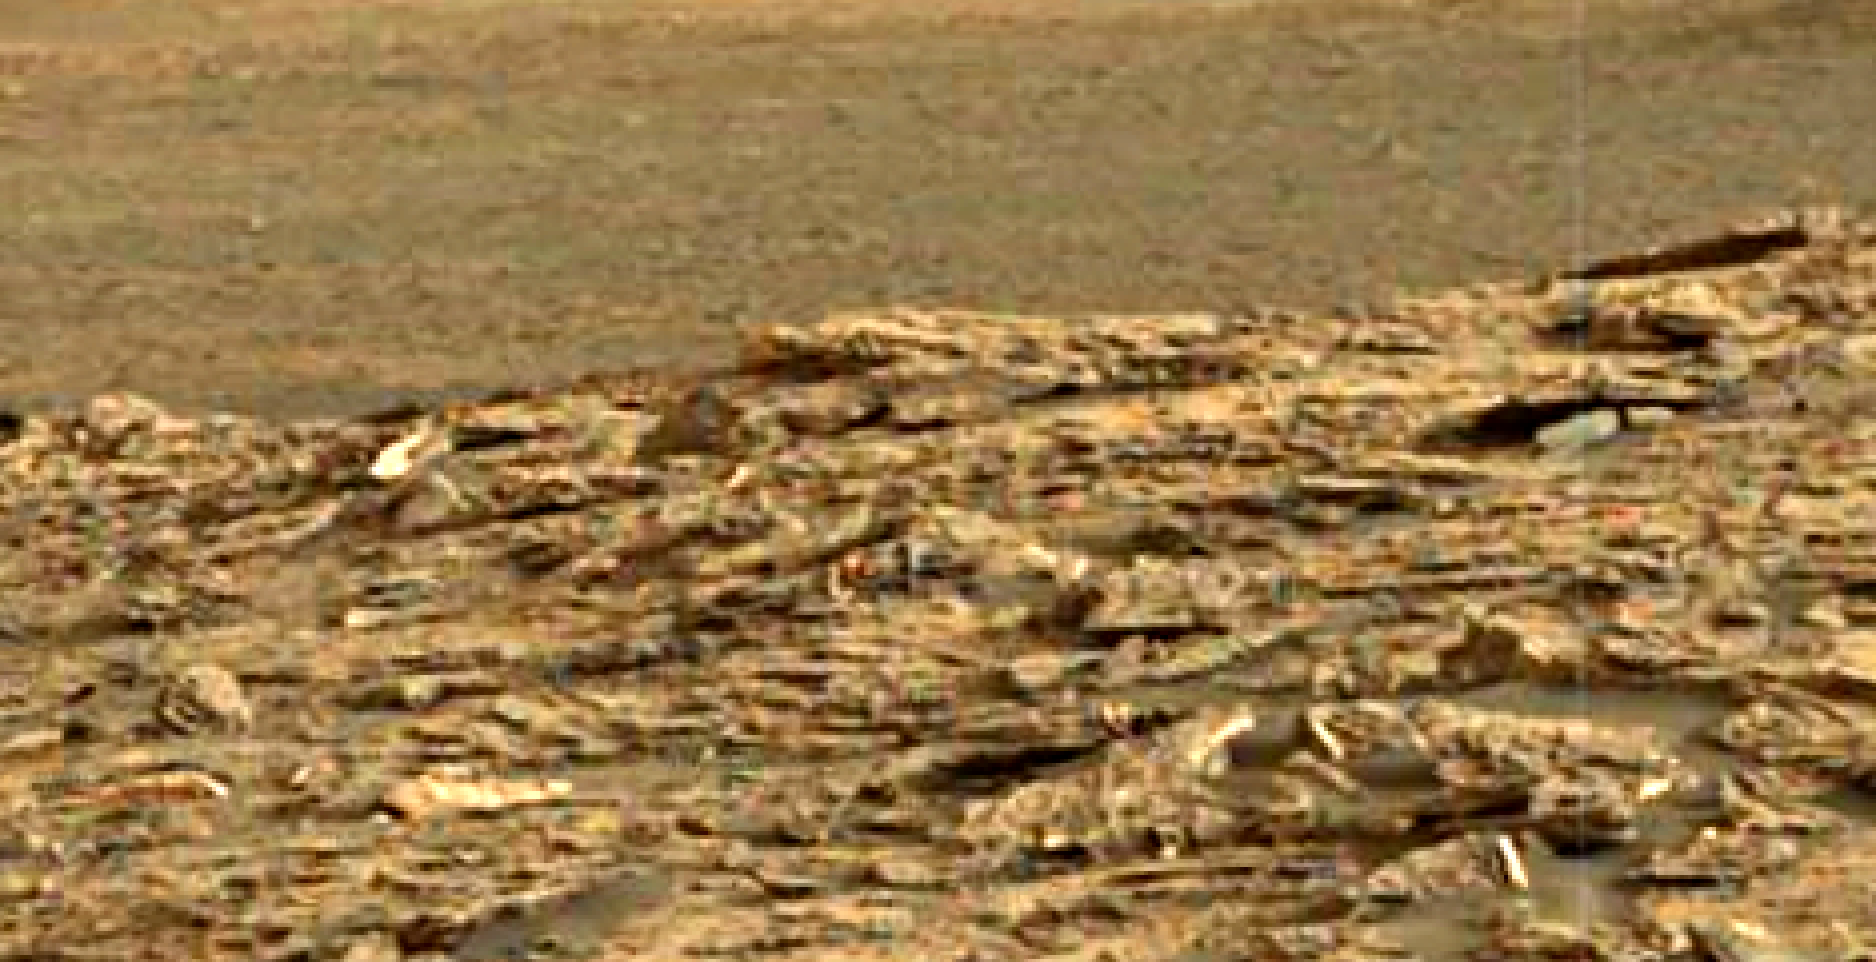 mars-sol-1448-anomaly-artifacts-20-was-life-on-mars